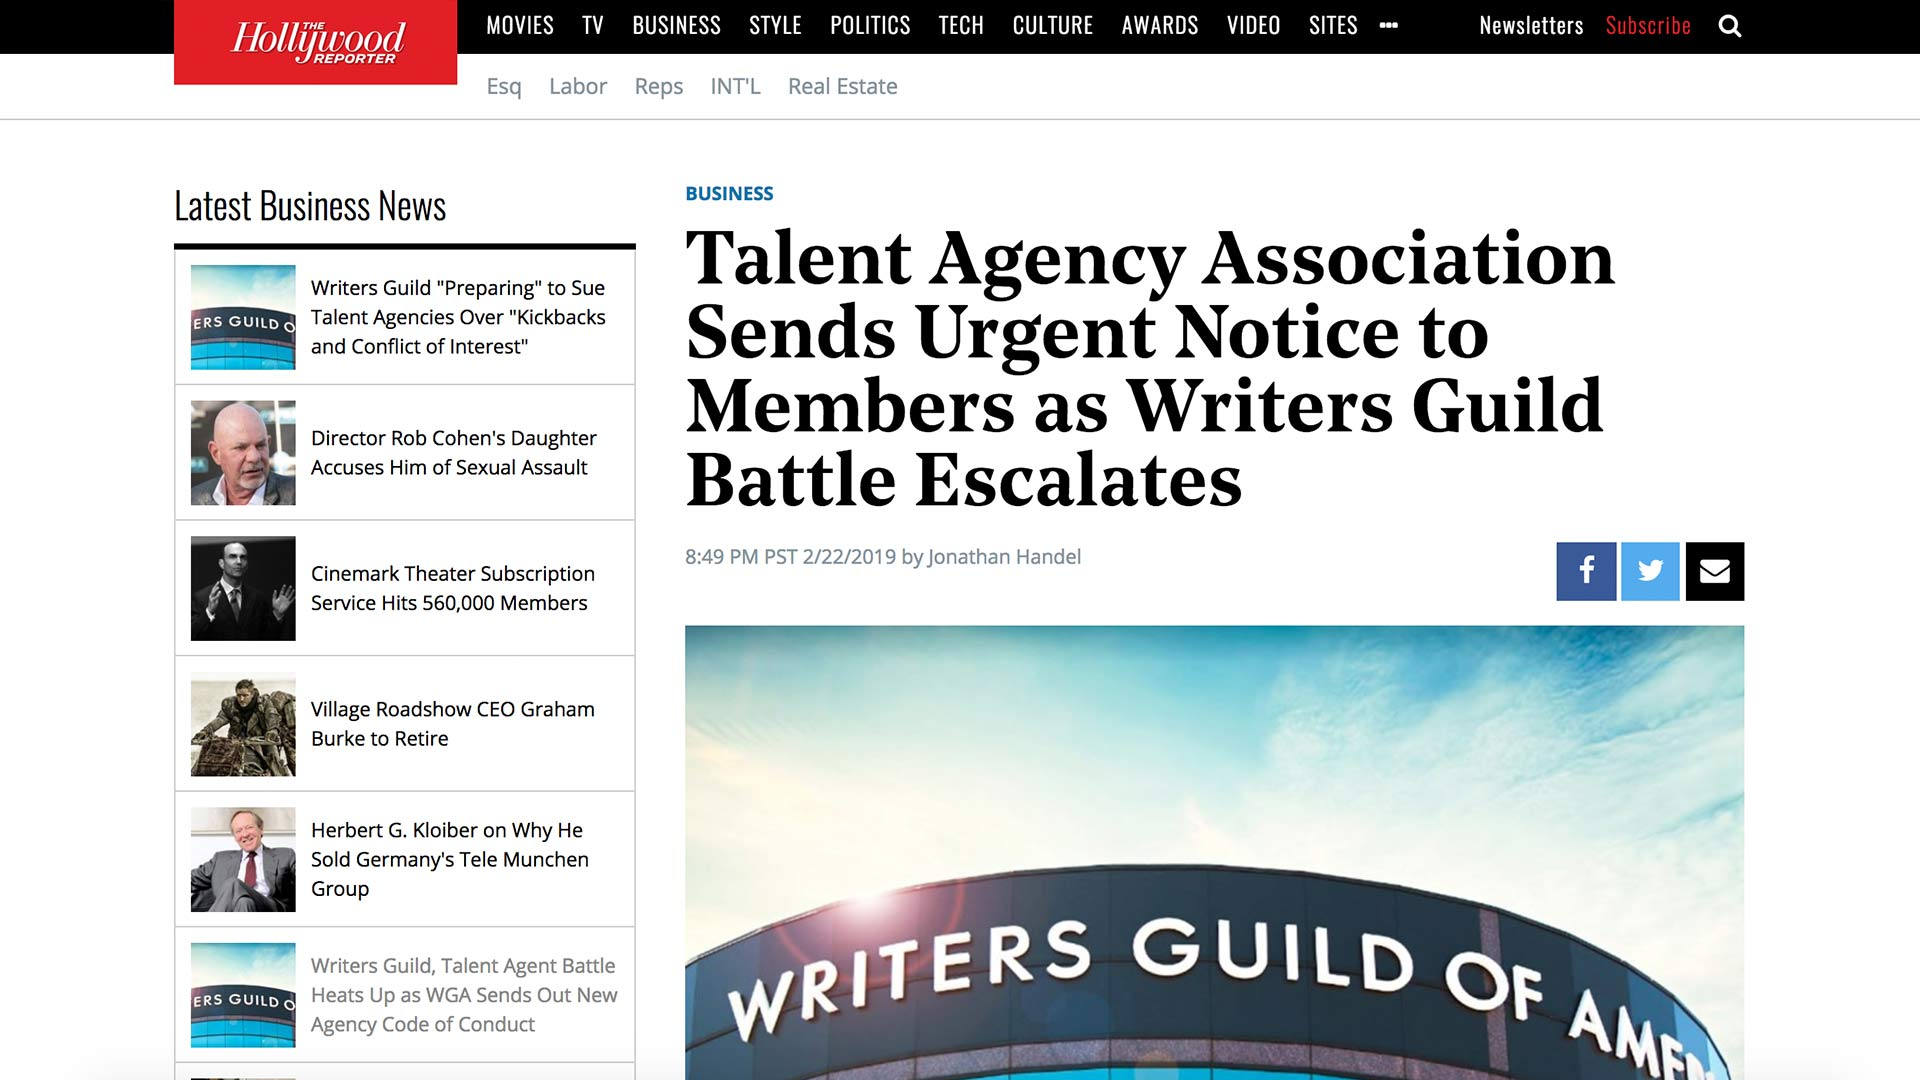 Fairness Rocks News Talent Agency Association Sends Urgent Notice to Members as Writers Guild Battle Escalates